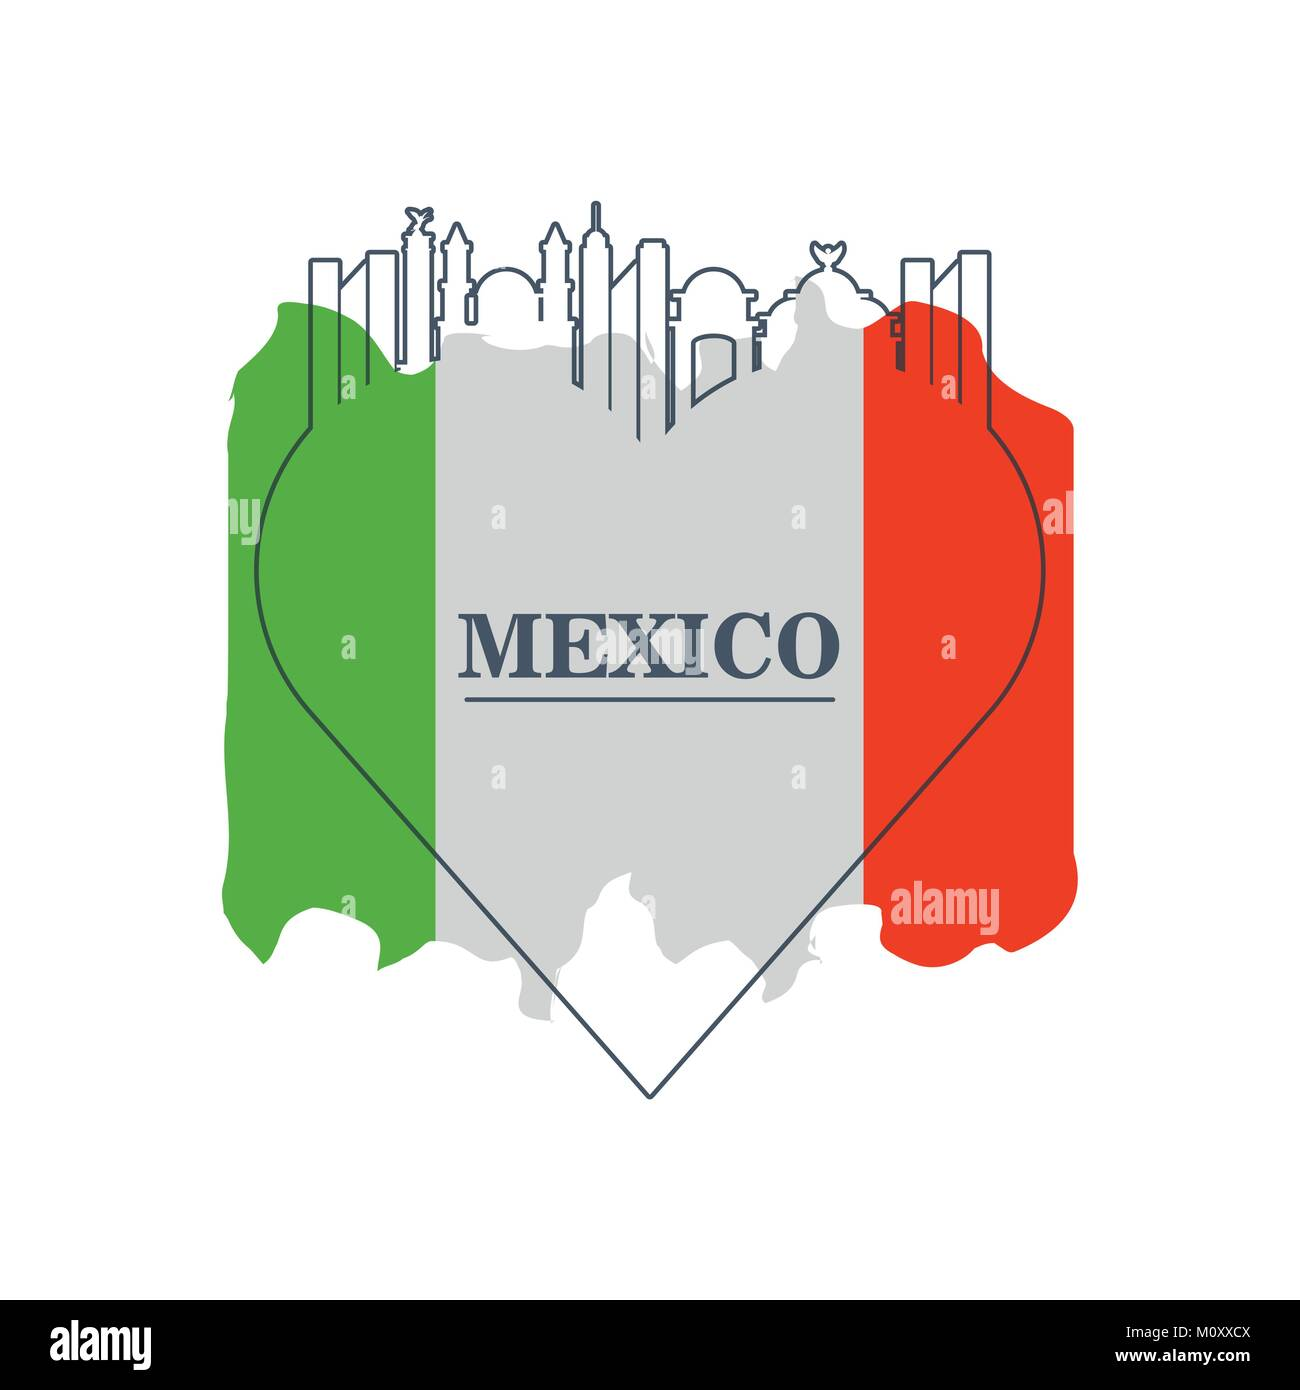 mexico flag with traditional mexican symbol - Stock Image